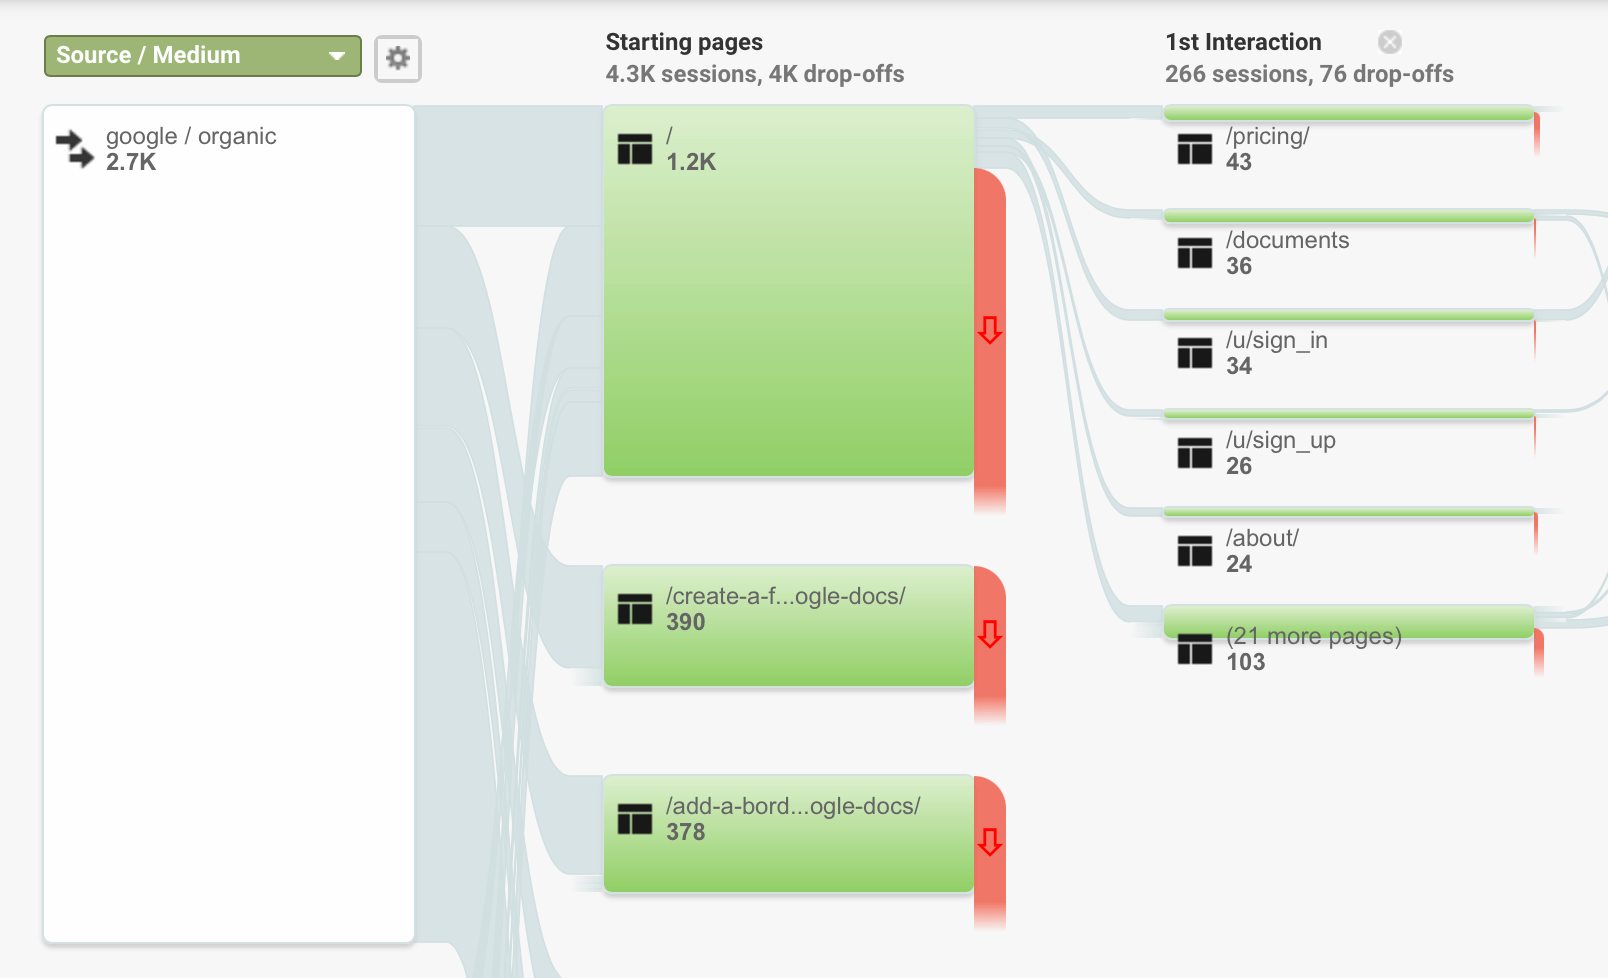 adding a secondary Source / Medium for Google from Goal Flow